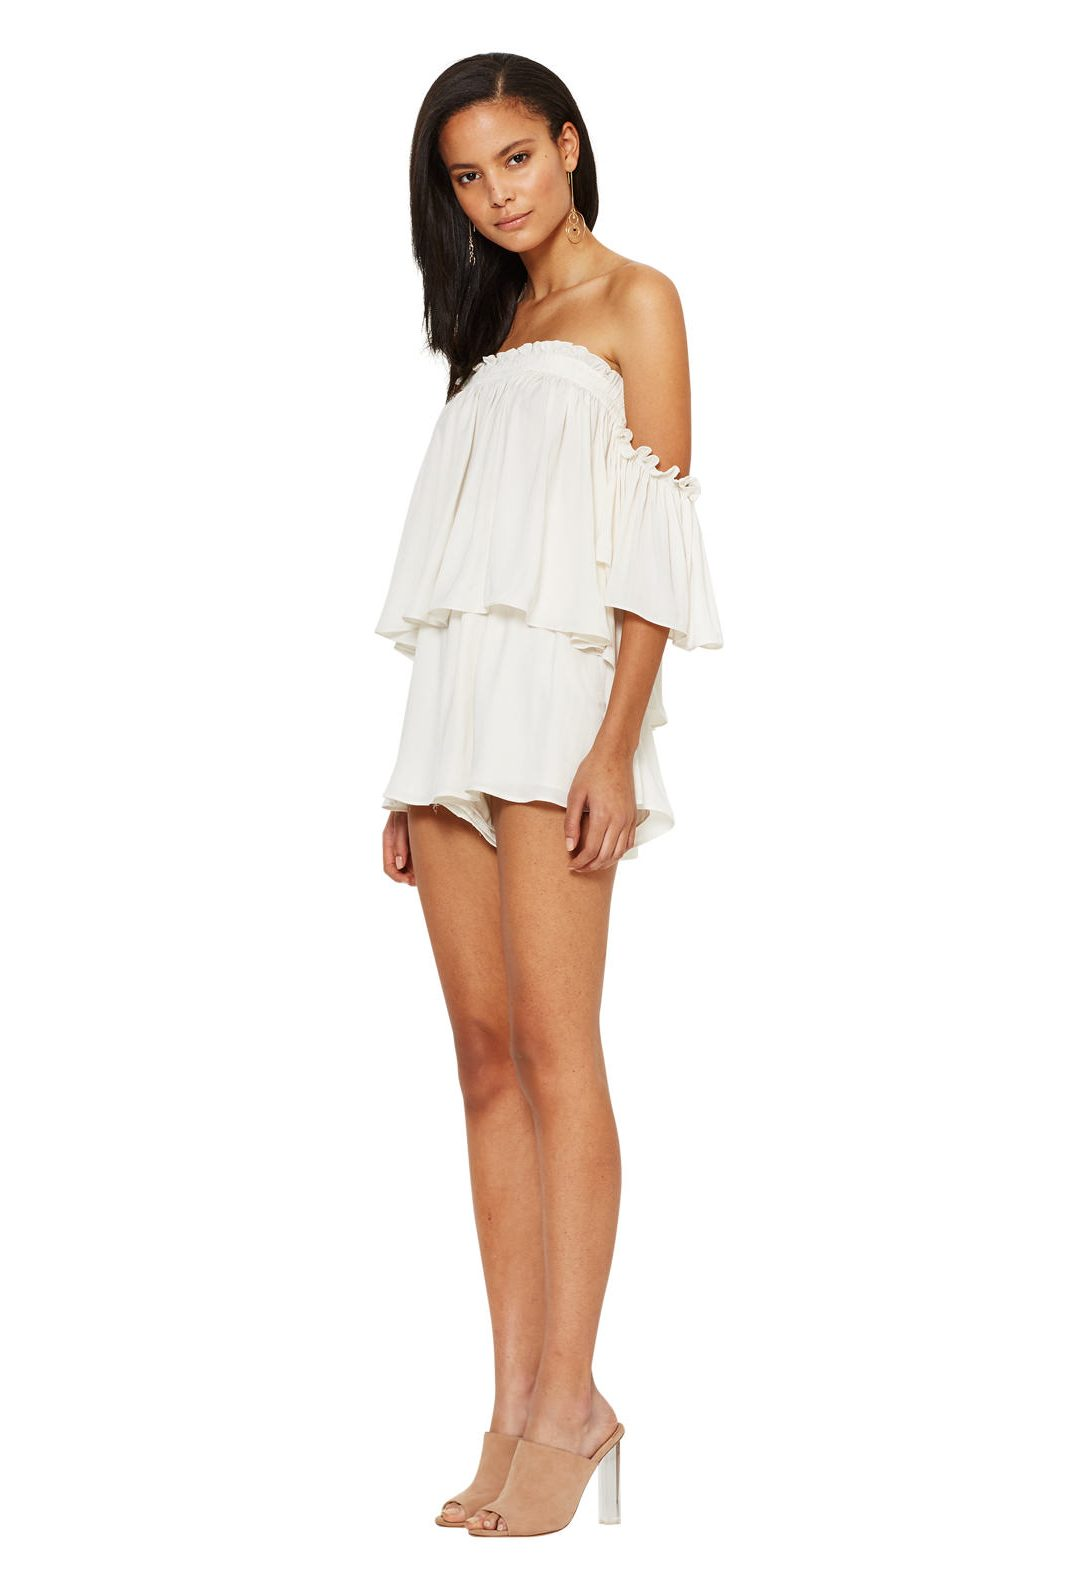 OCEAN EYES PLAYSUIT – IVORY (2)